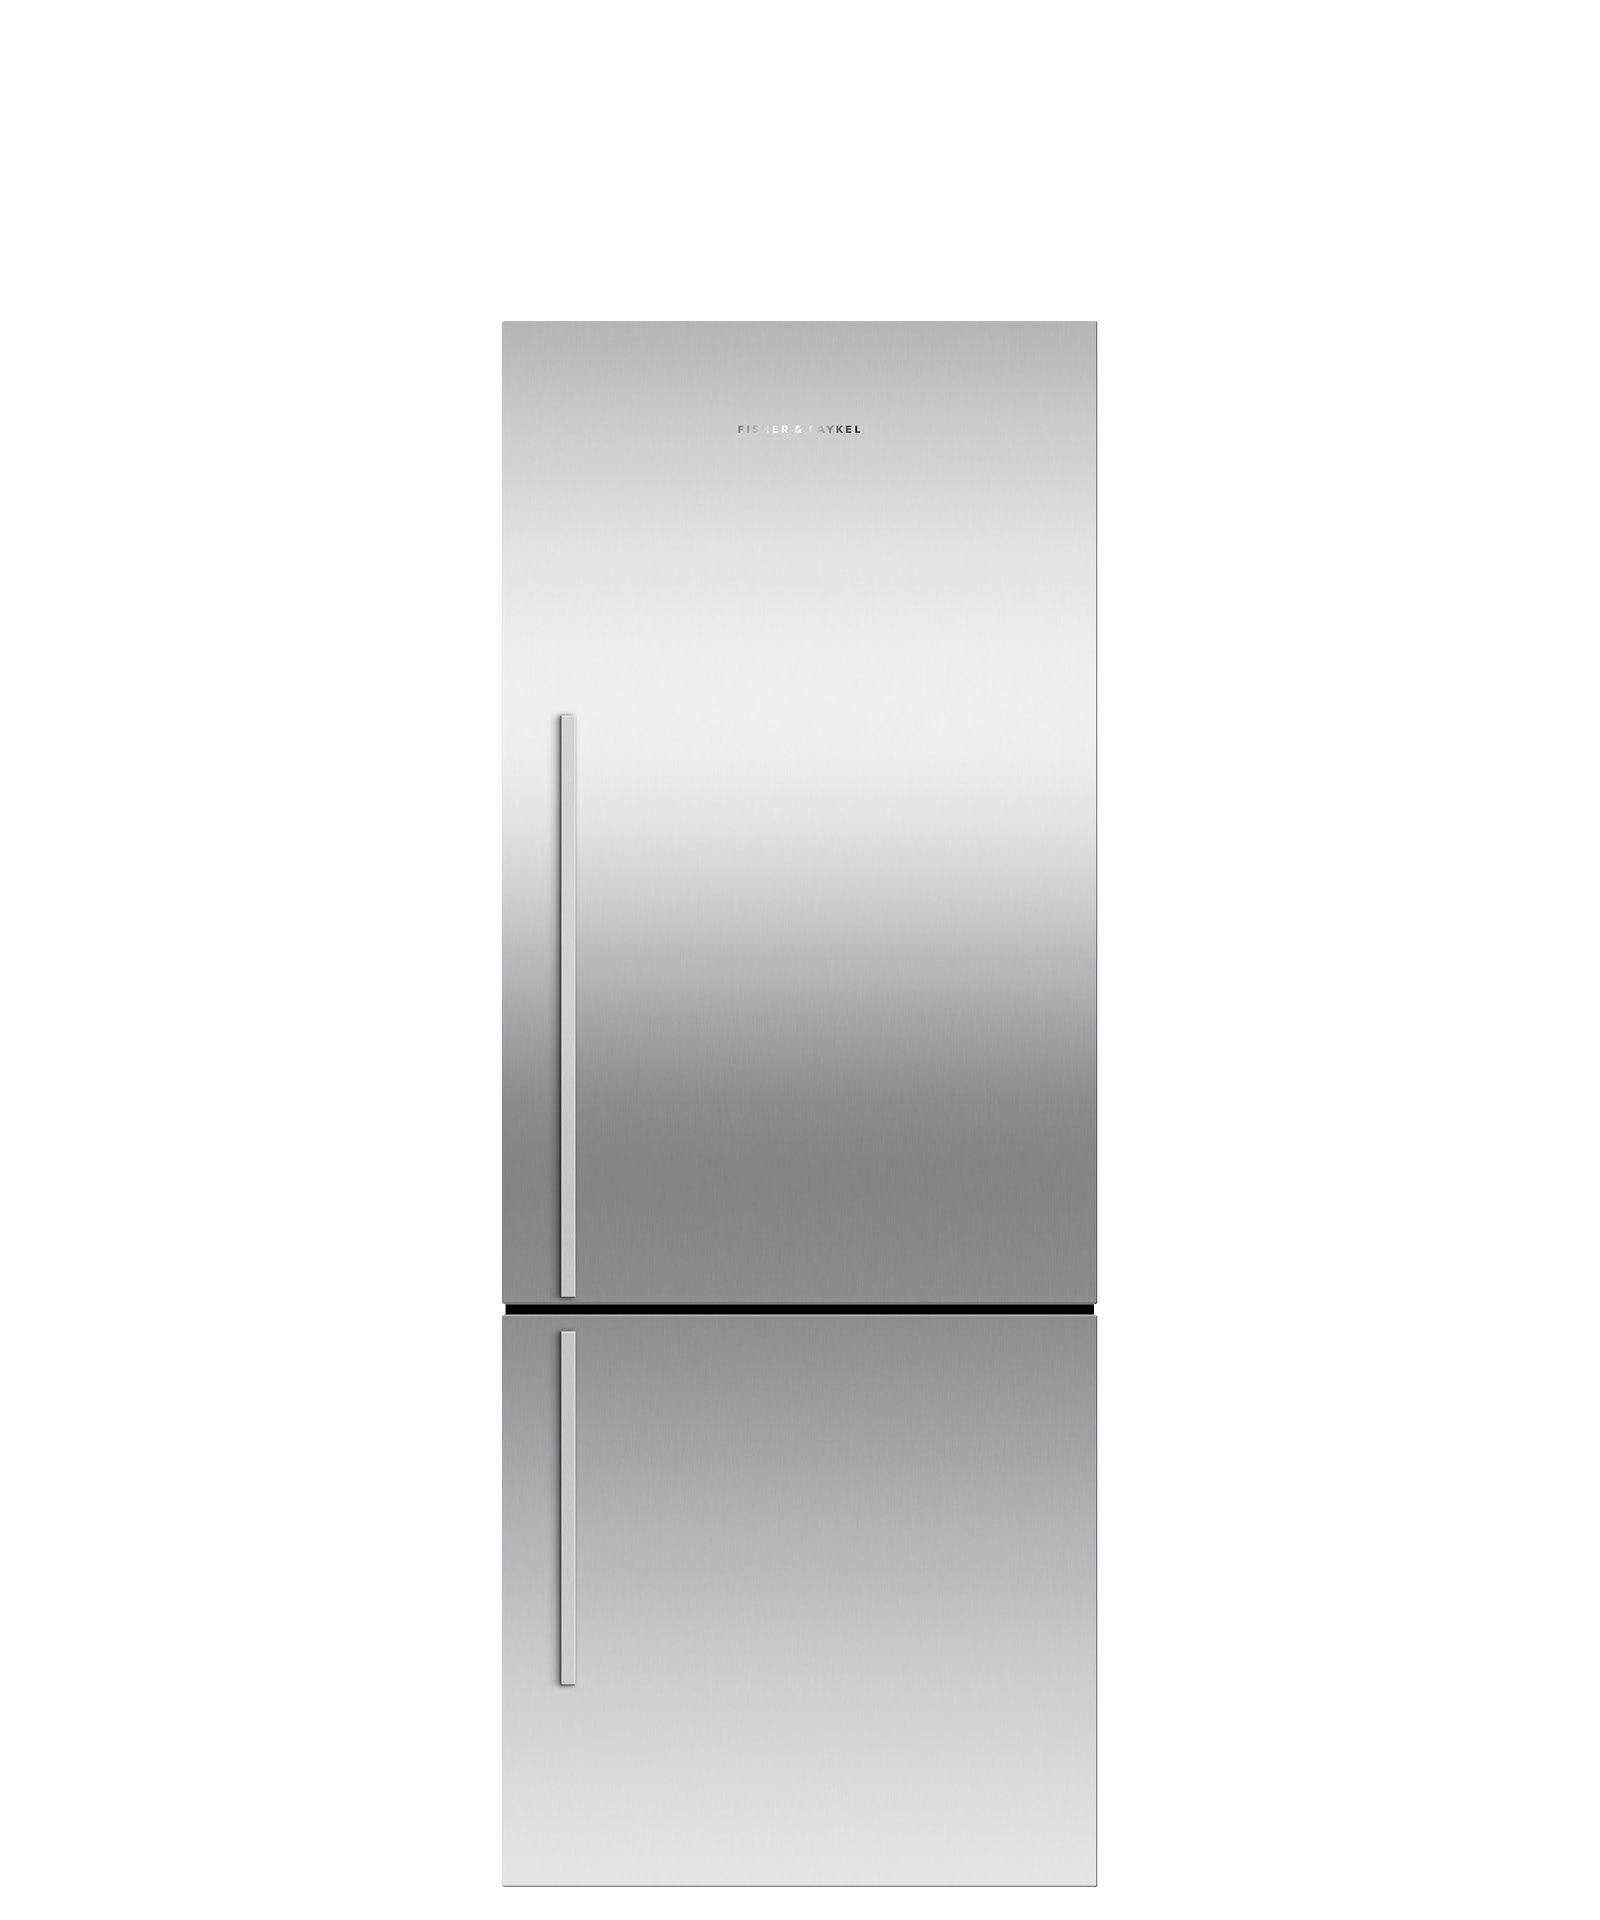 "Model: RF135BDRJX4 | Fisher and Paykel Freestanding Refrigerator Freezer, 25"", 13.5 cu ft, Ice only"